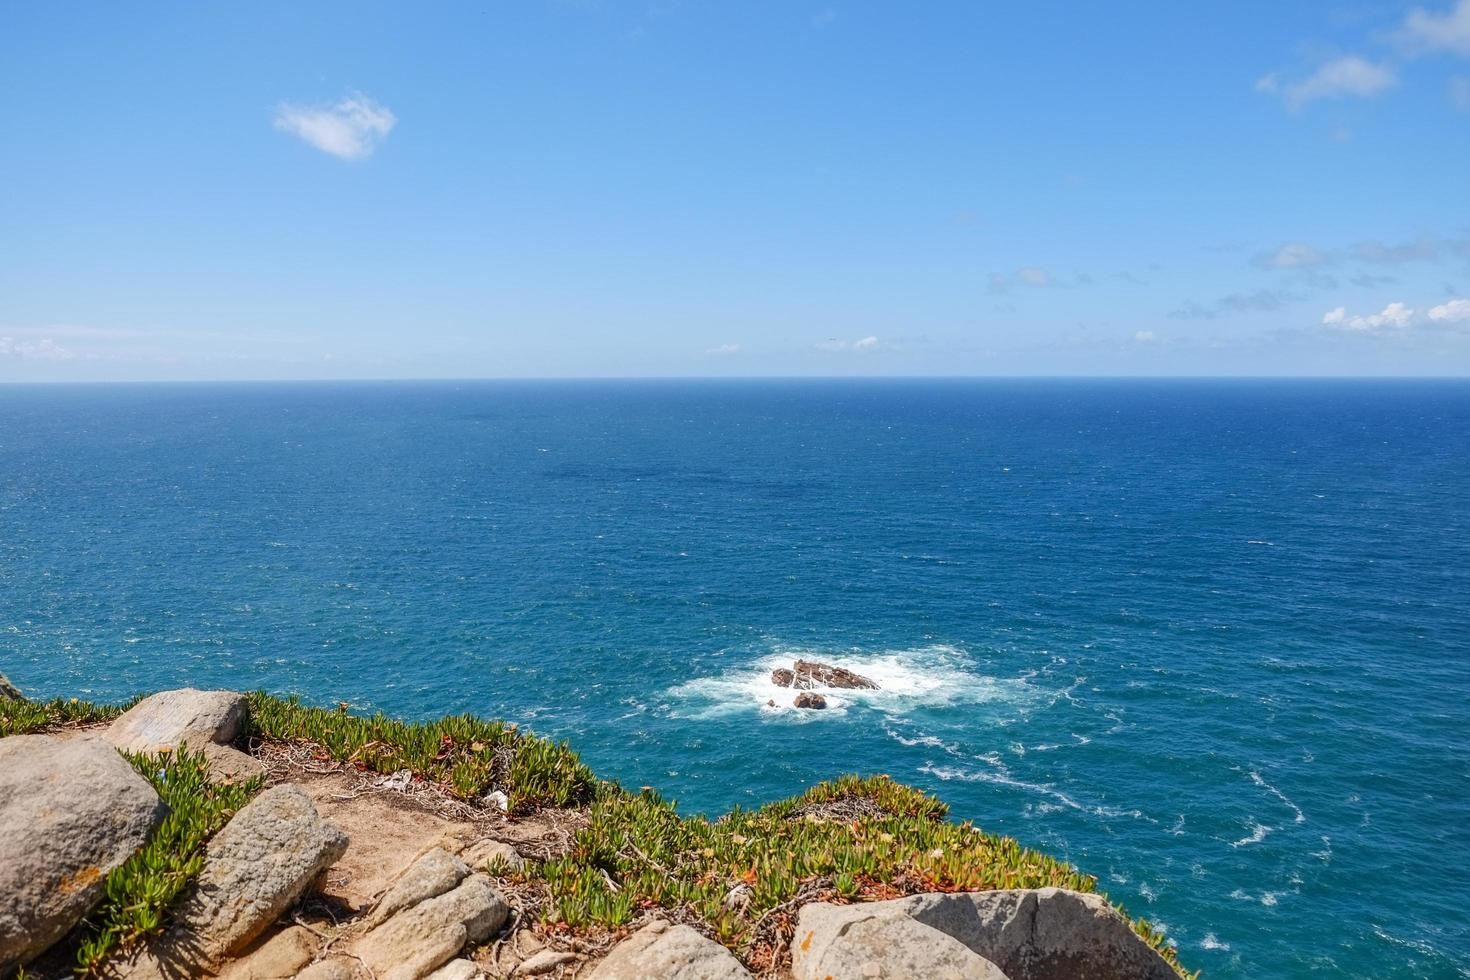 Atlantic ocean with small waves against blue sky photo